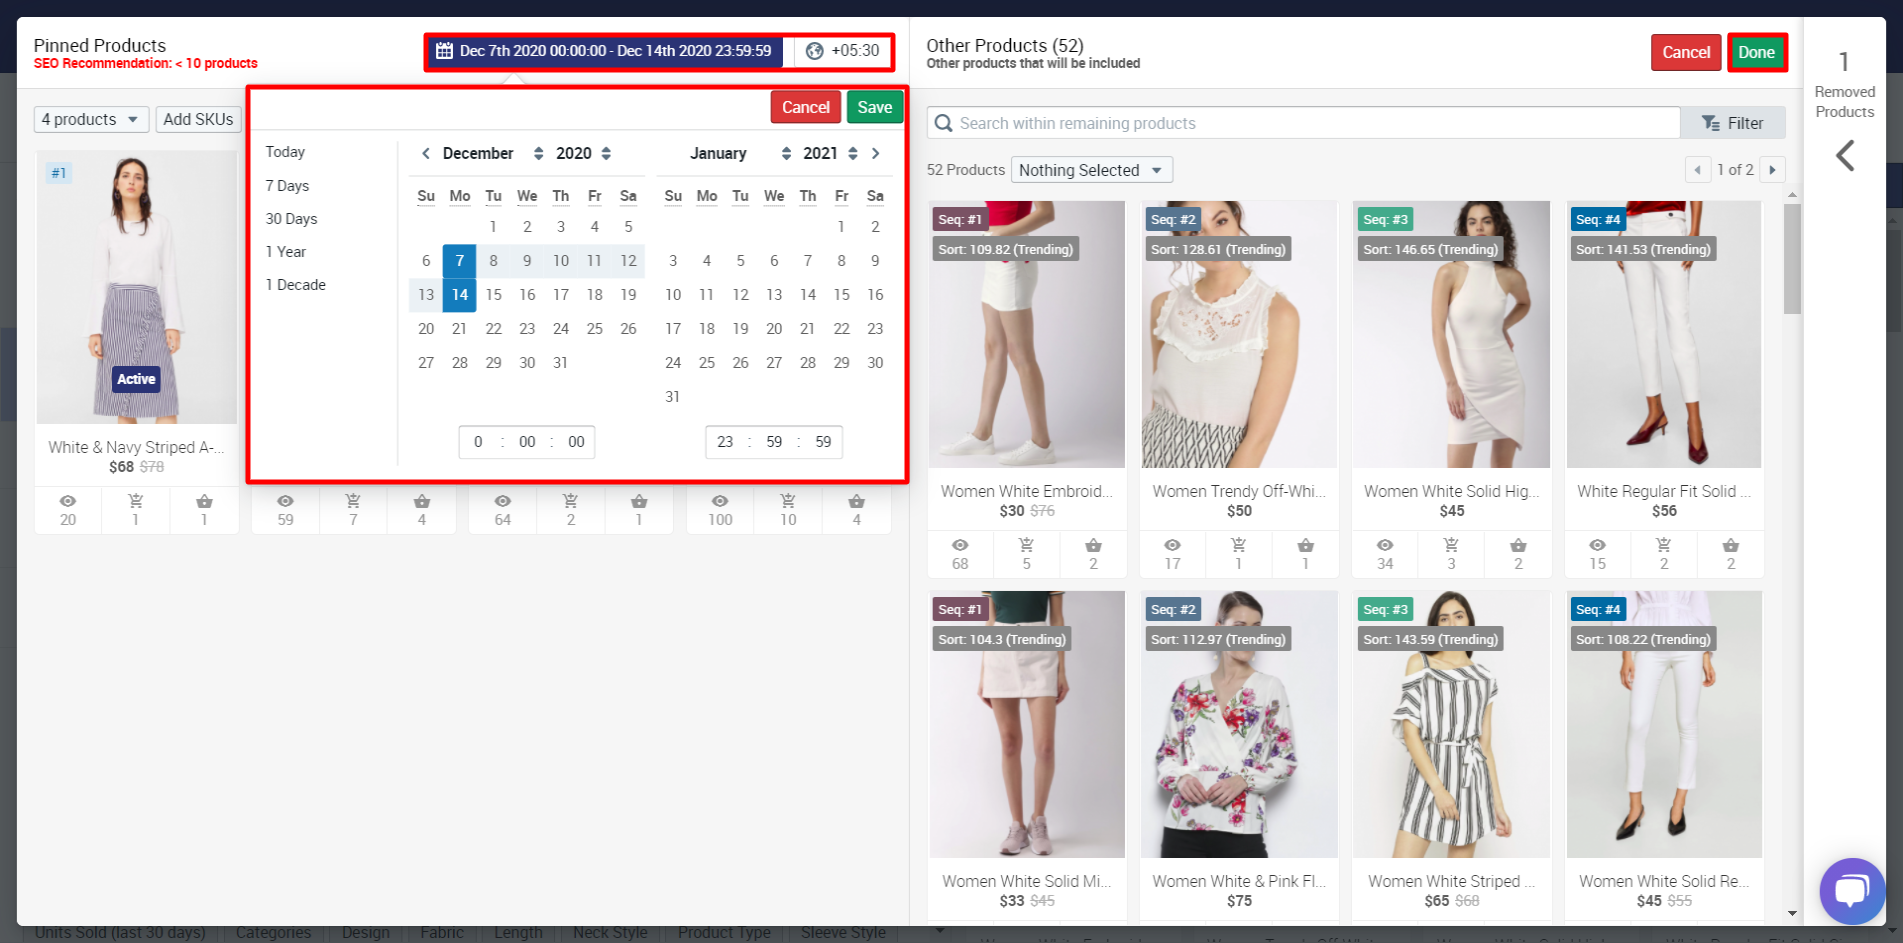 Extending the date range of pinned products in Tagalys